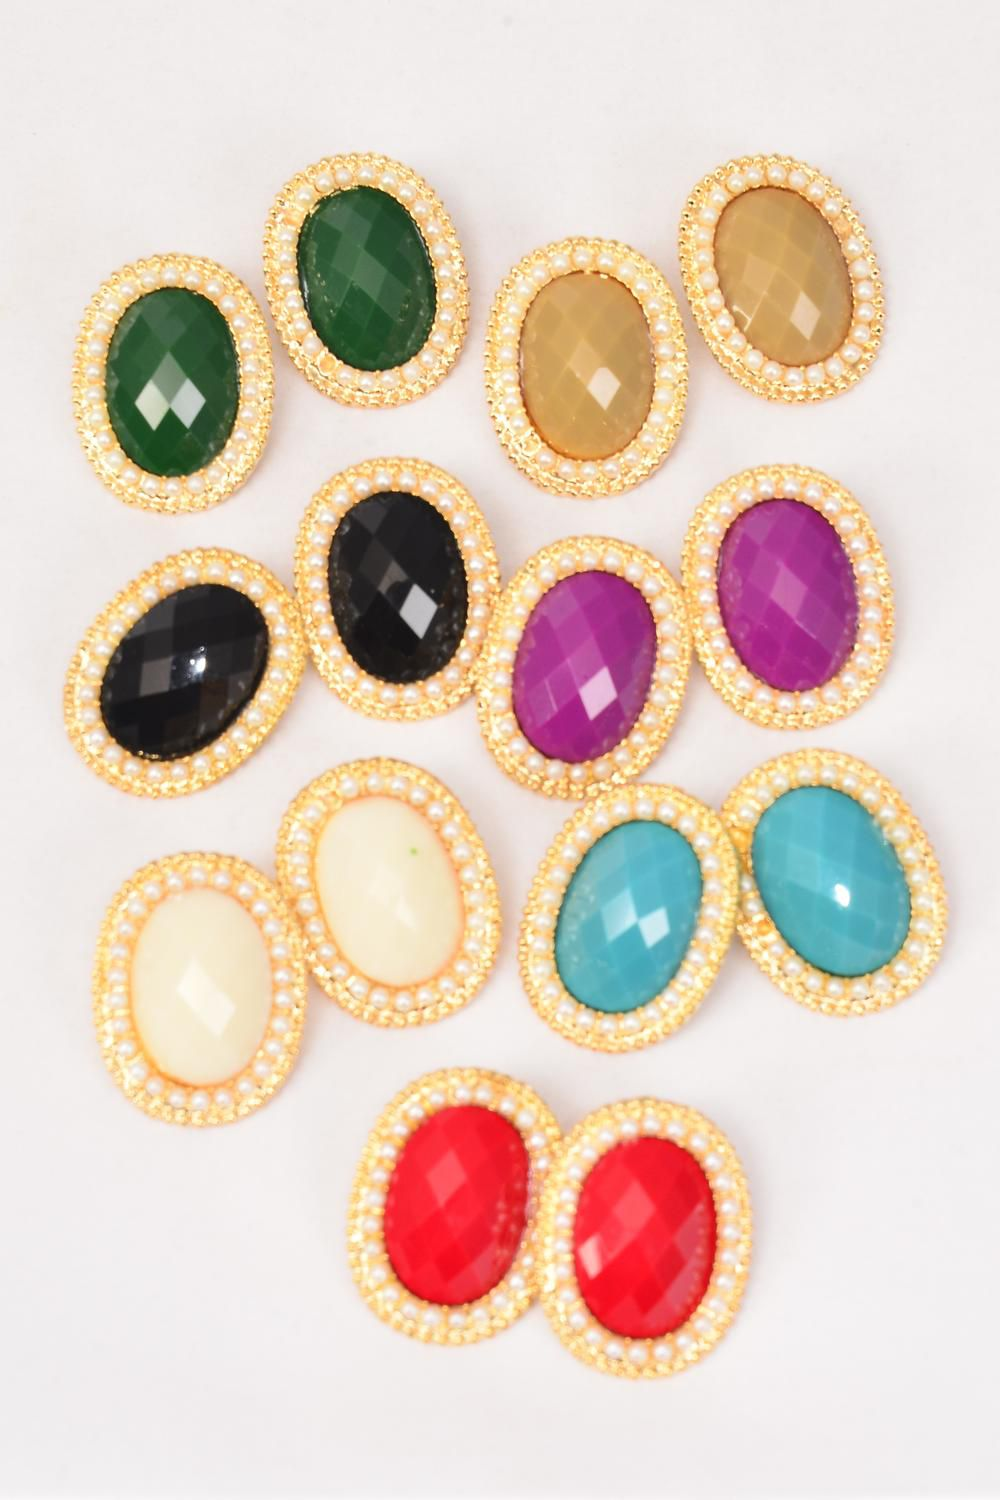 "Earrings Metal Oval Gold Oval Poly Stone & Pearl All Around Post/DZ **Post** Size-1.25""x 1"" Wide,2 Red,2 Black,2 White,2 Blue,2 Purple,1 Green,1 Khaki Mix,Earring Card & OPP bag & UPC Code -"